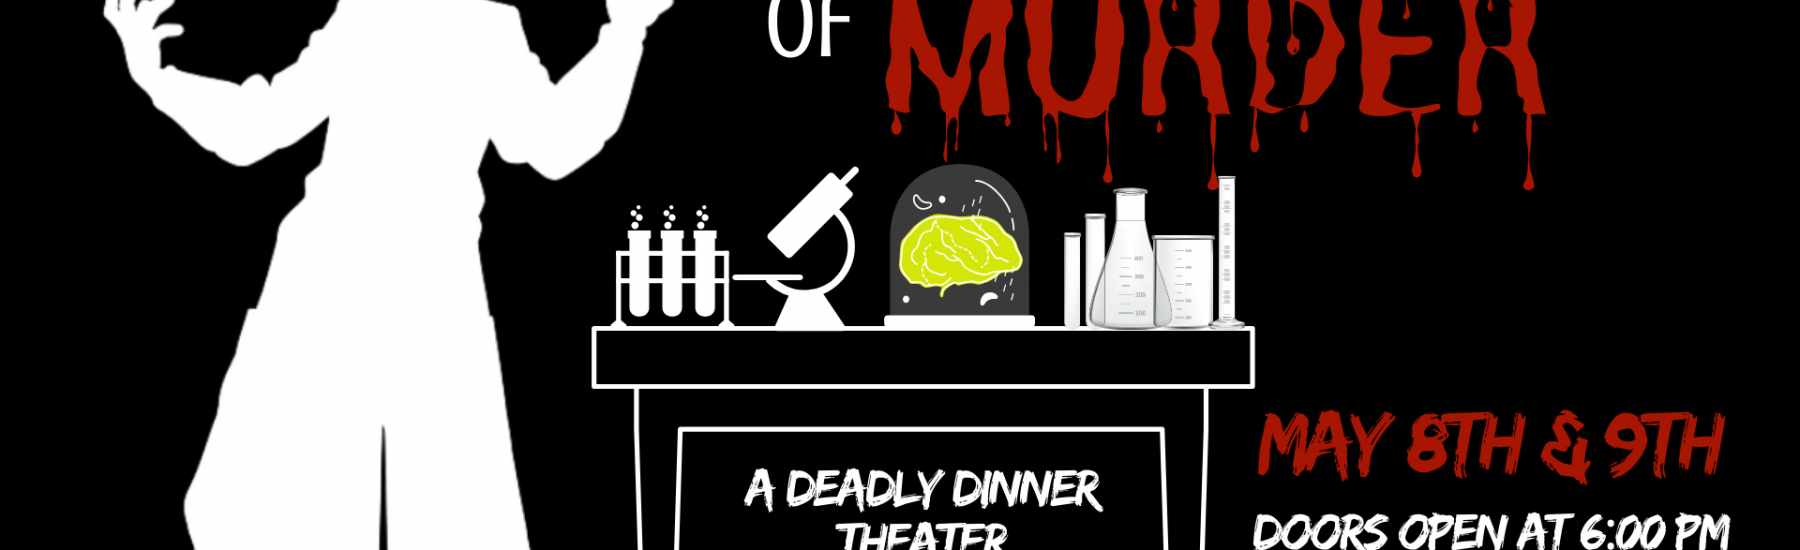 The Science of Murder- May 8th & 9th